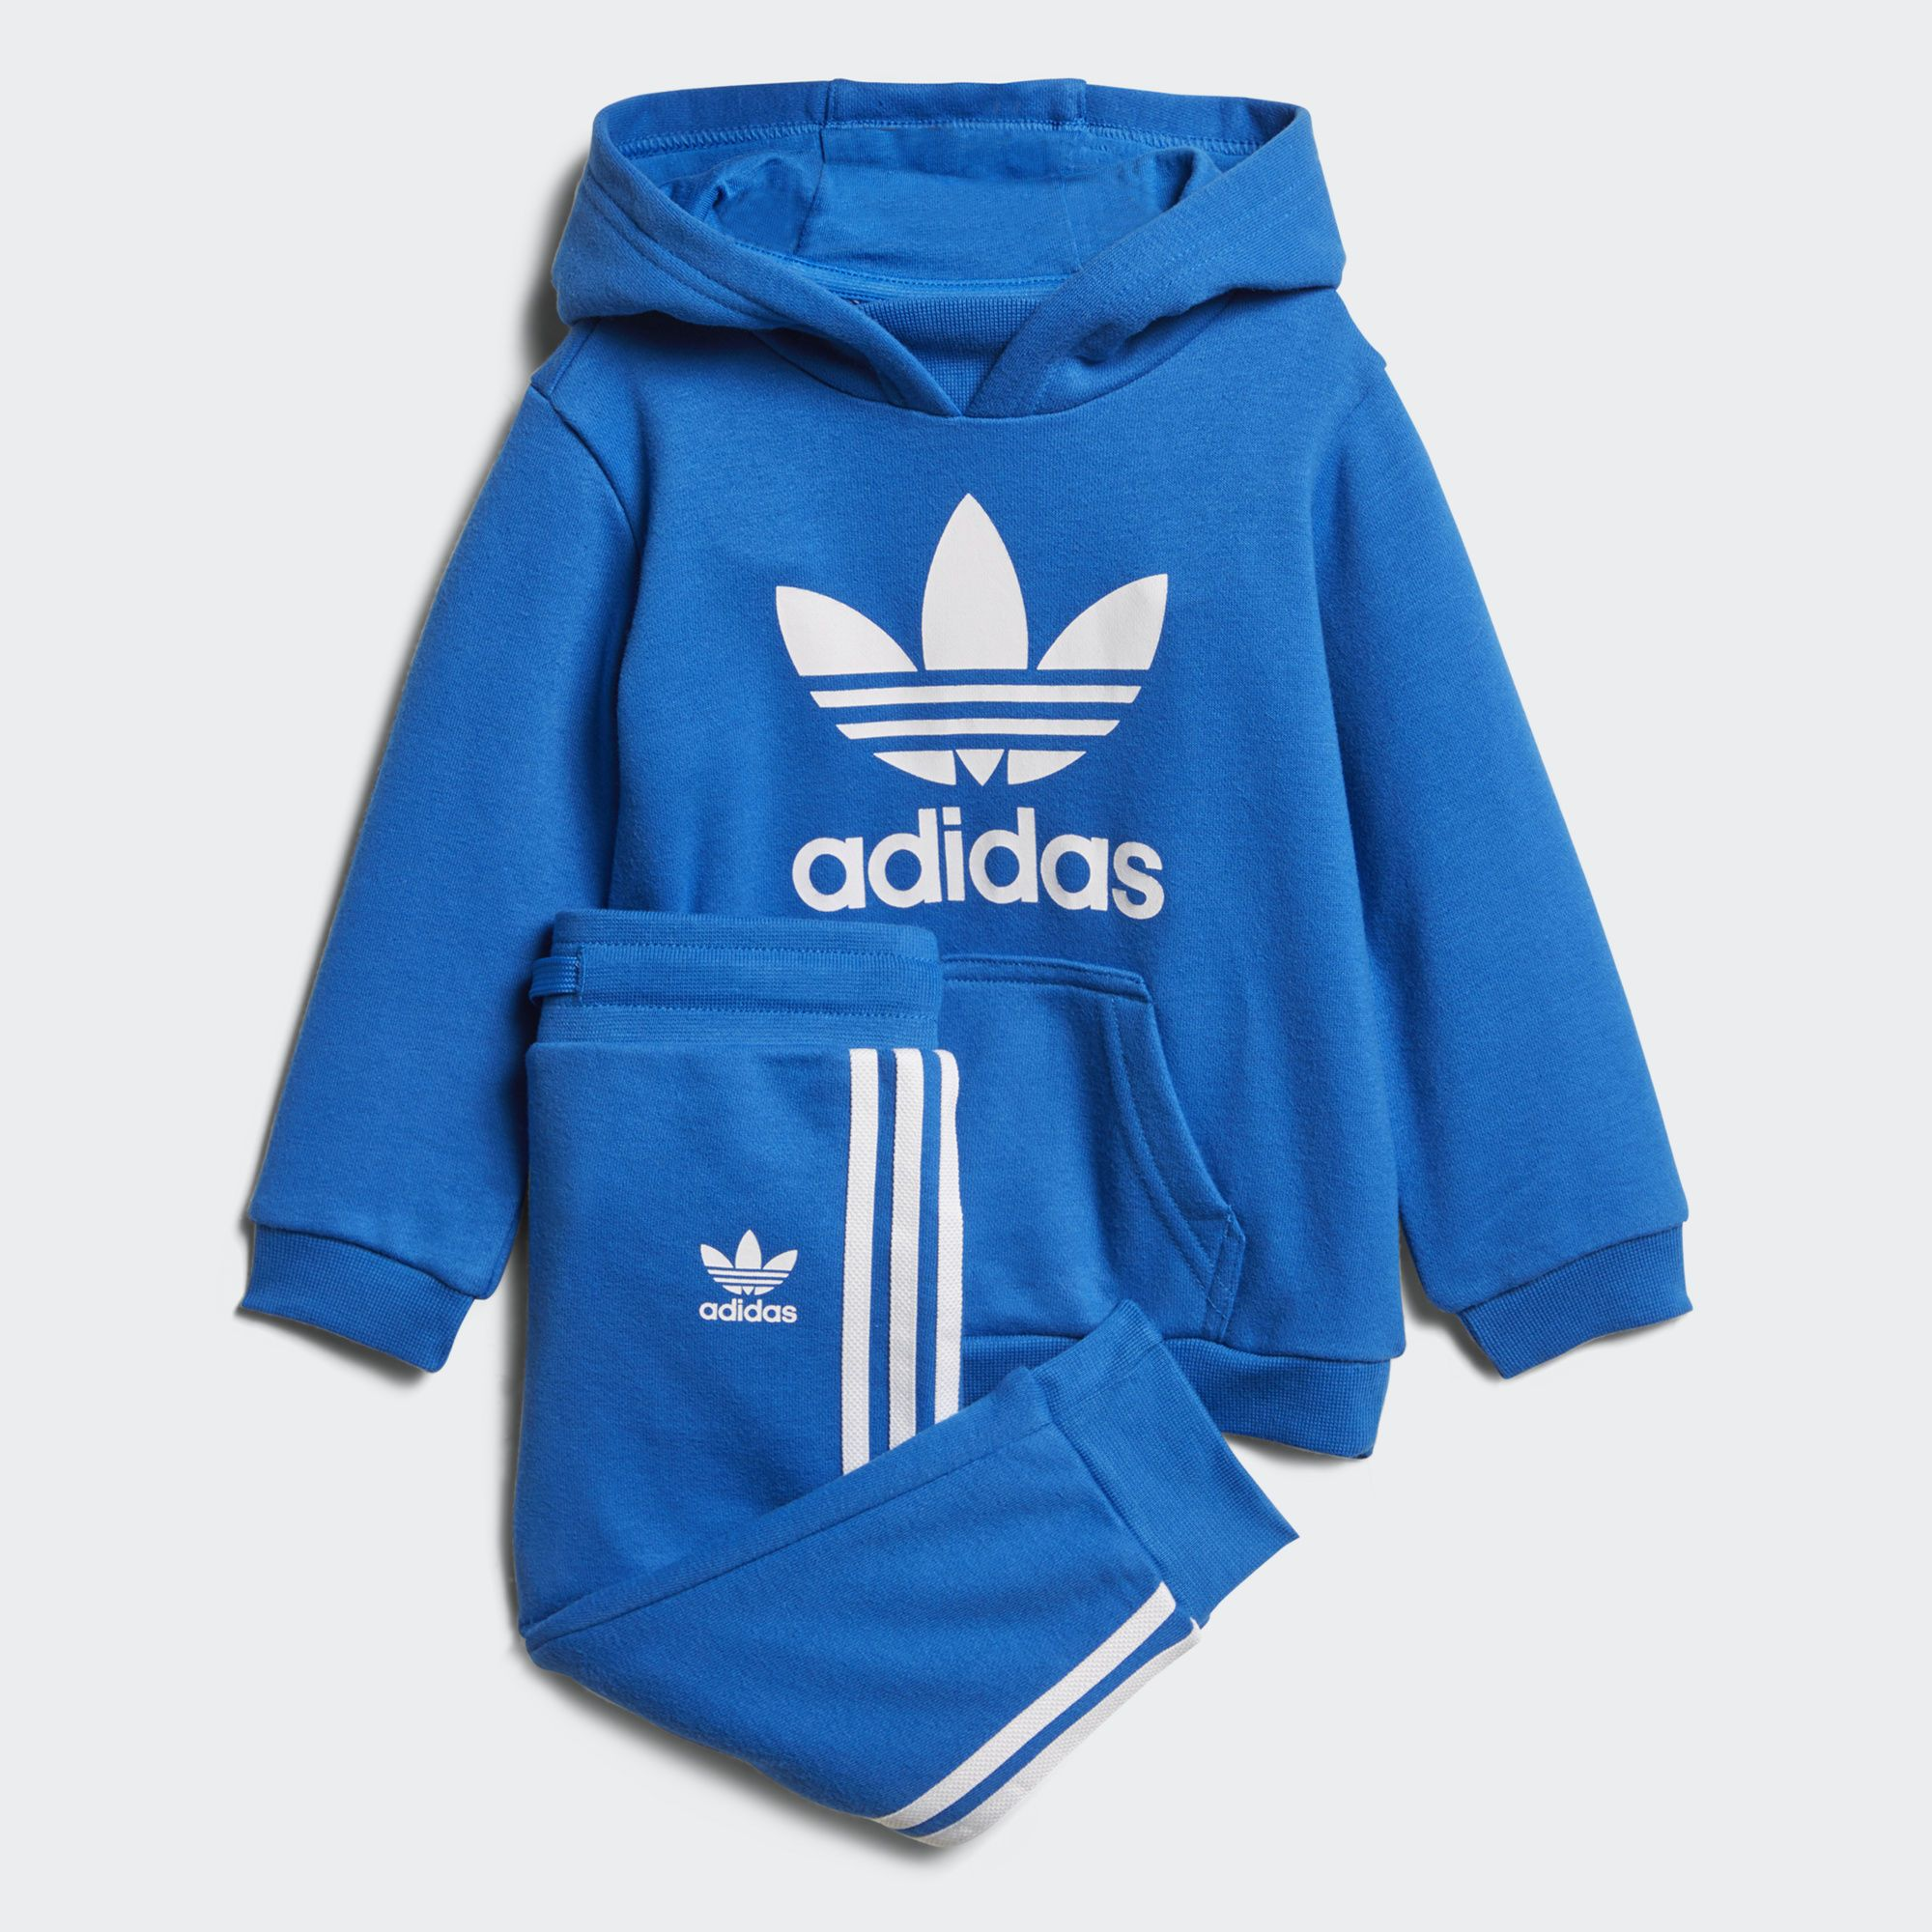 897d0e65eaa90 Shop for Trefoil Hoodie Set - Blue at adidas.co.uk! See all the styles and  colours of Trefoil Hoodie Set - Blue at the official adidas UK online store.